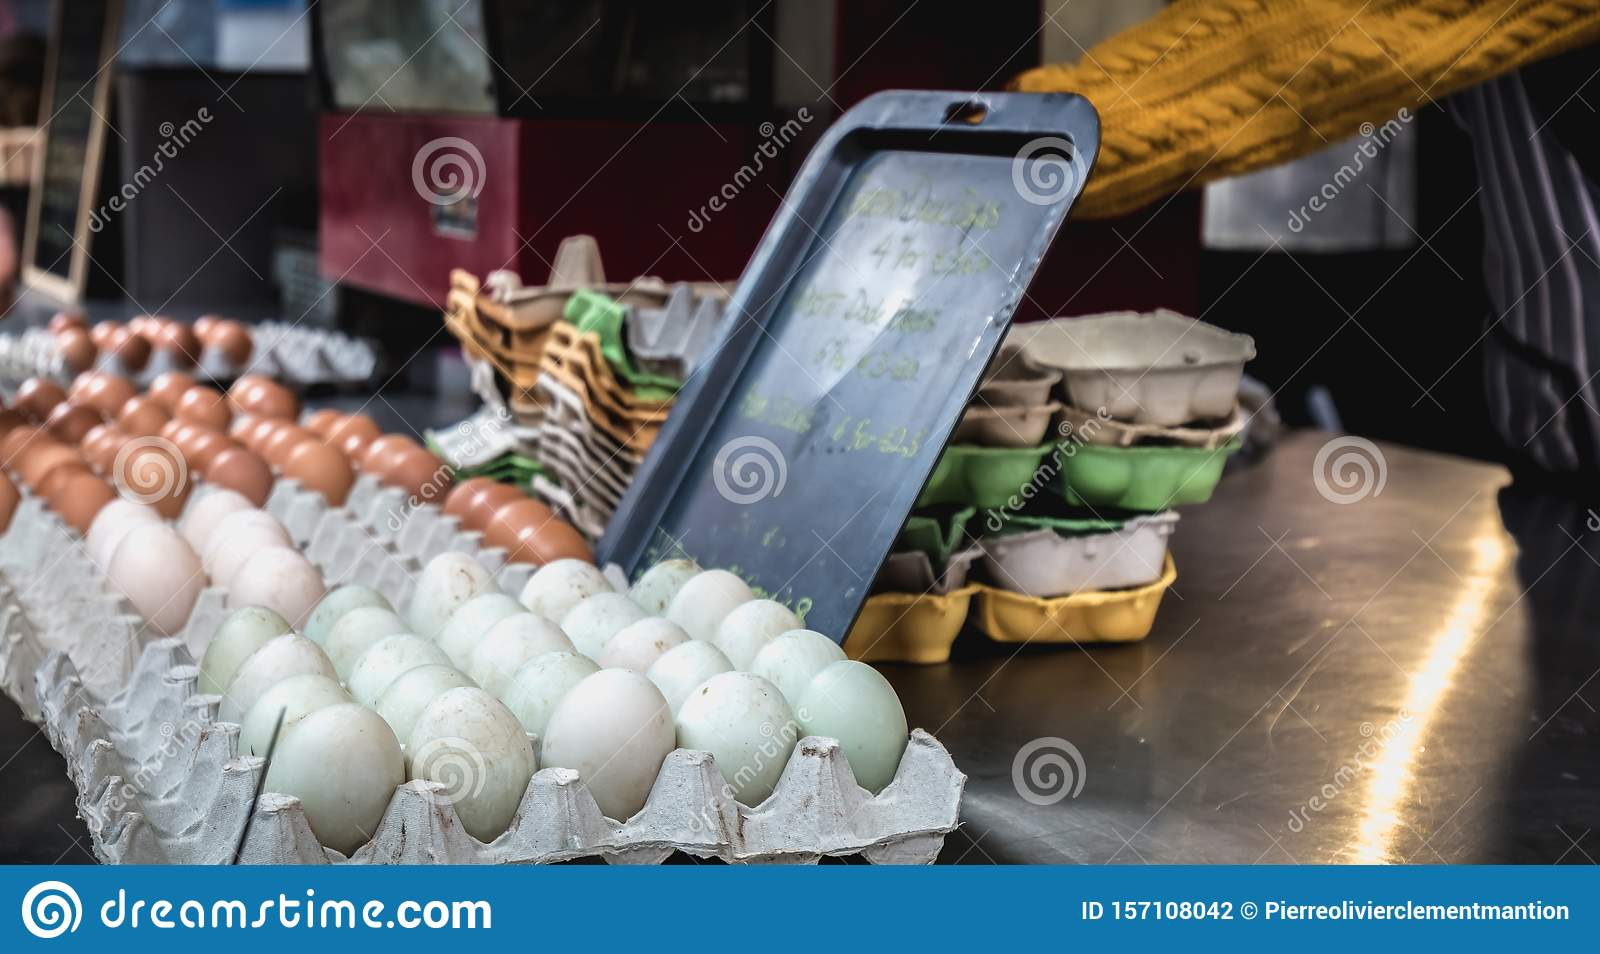 Stand of a vendor of eggs and farm products in the Temple Bar in Dublin, Ireland